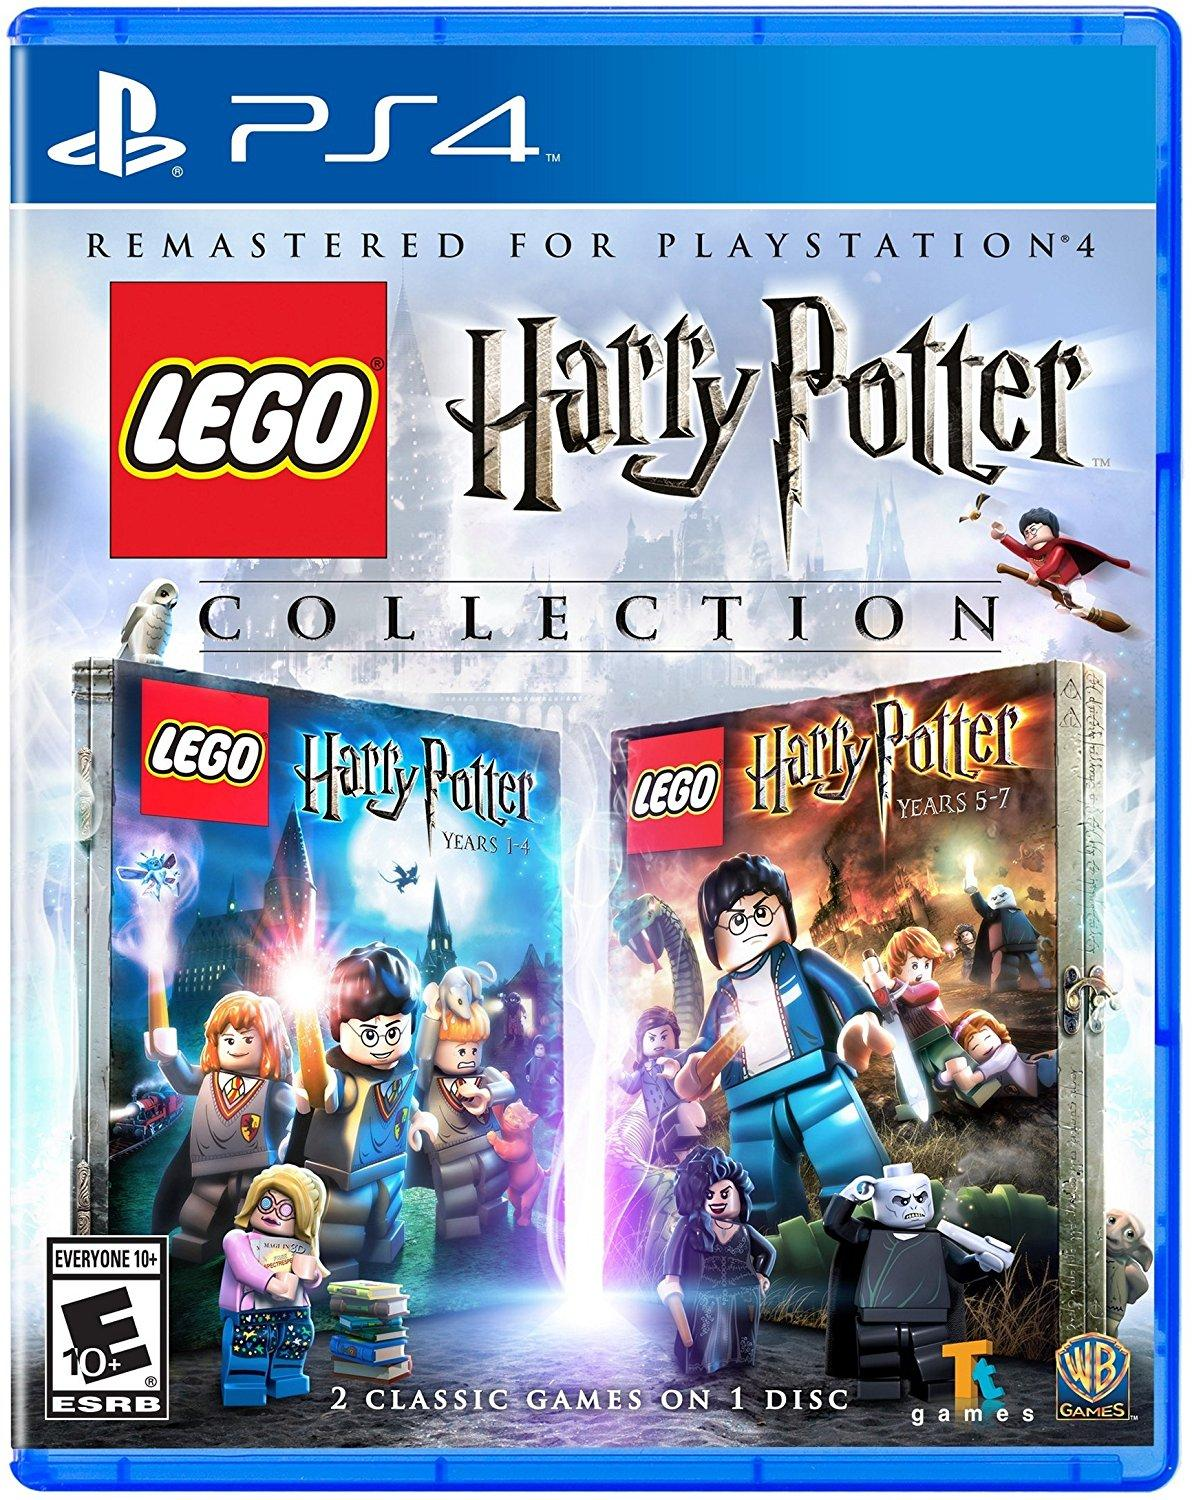 Amazon.com: LEGO Harry Potter Collection - PlayStation 4 ...